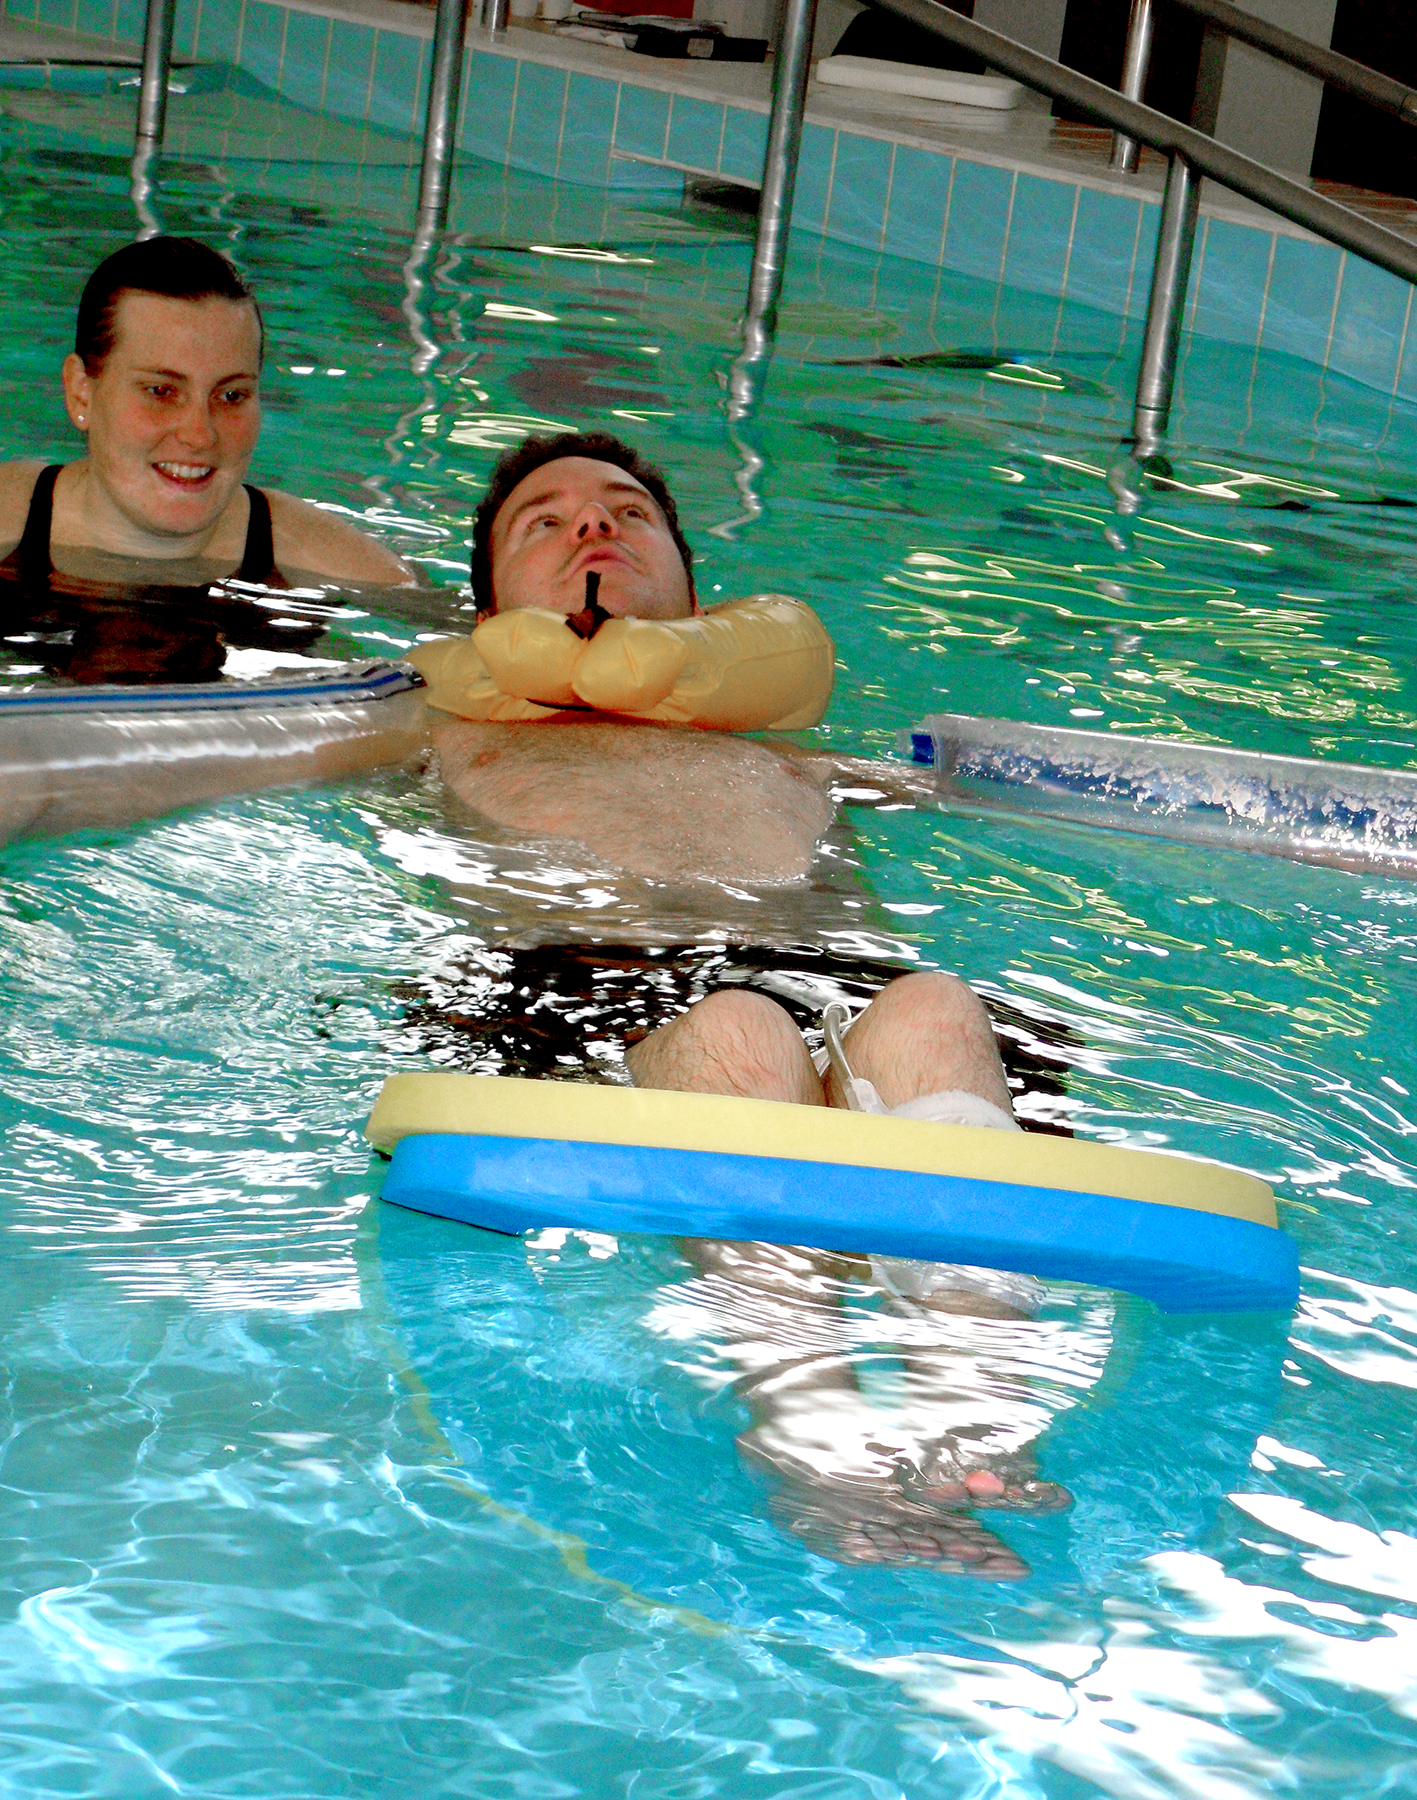 Dan Eley in Hydrotherapy session which is beneficial exercise for SCI